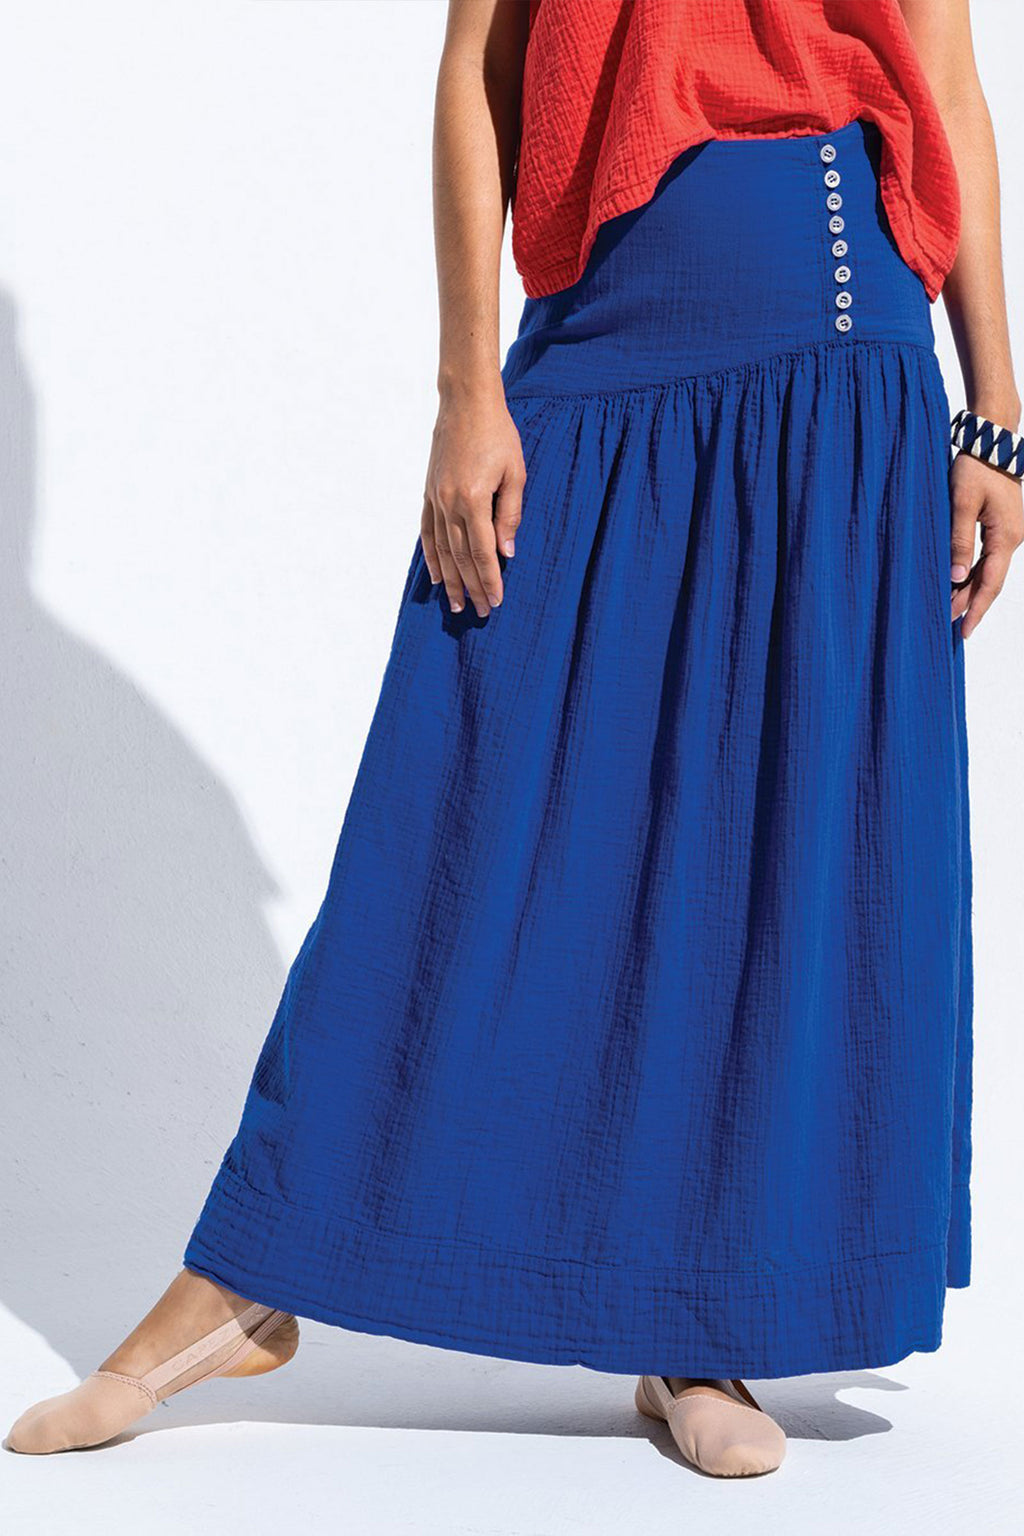 Atelier Delphine Cecilia Long Skirt In Majorelle Blue